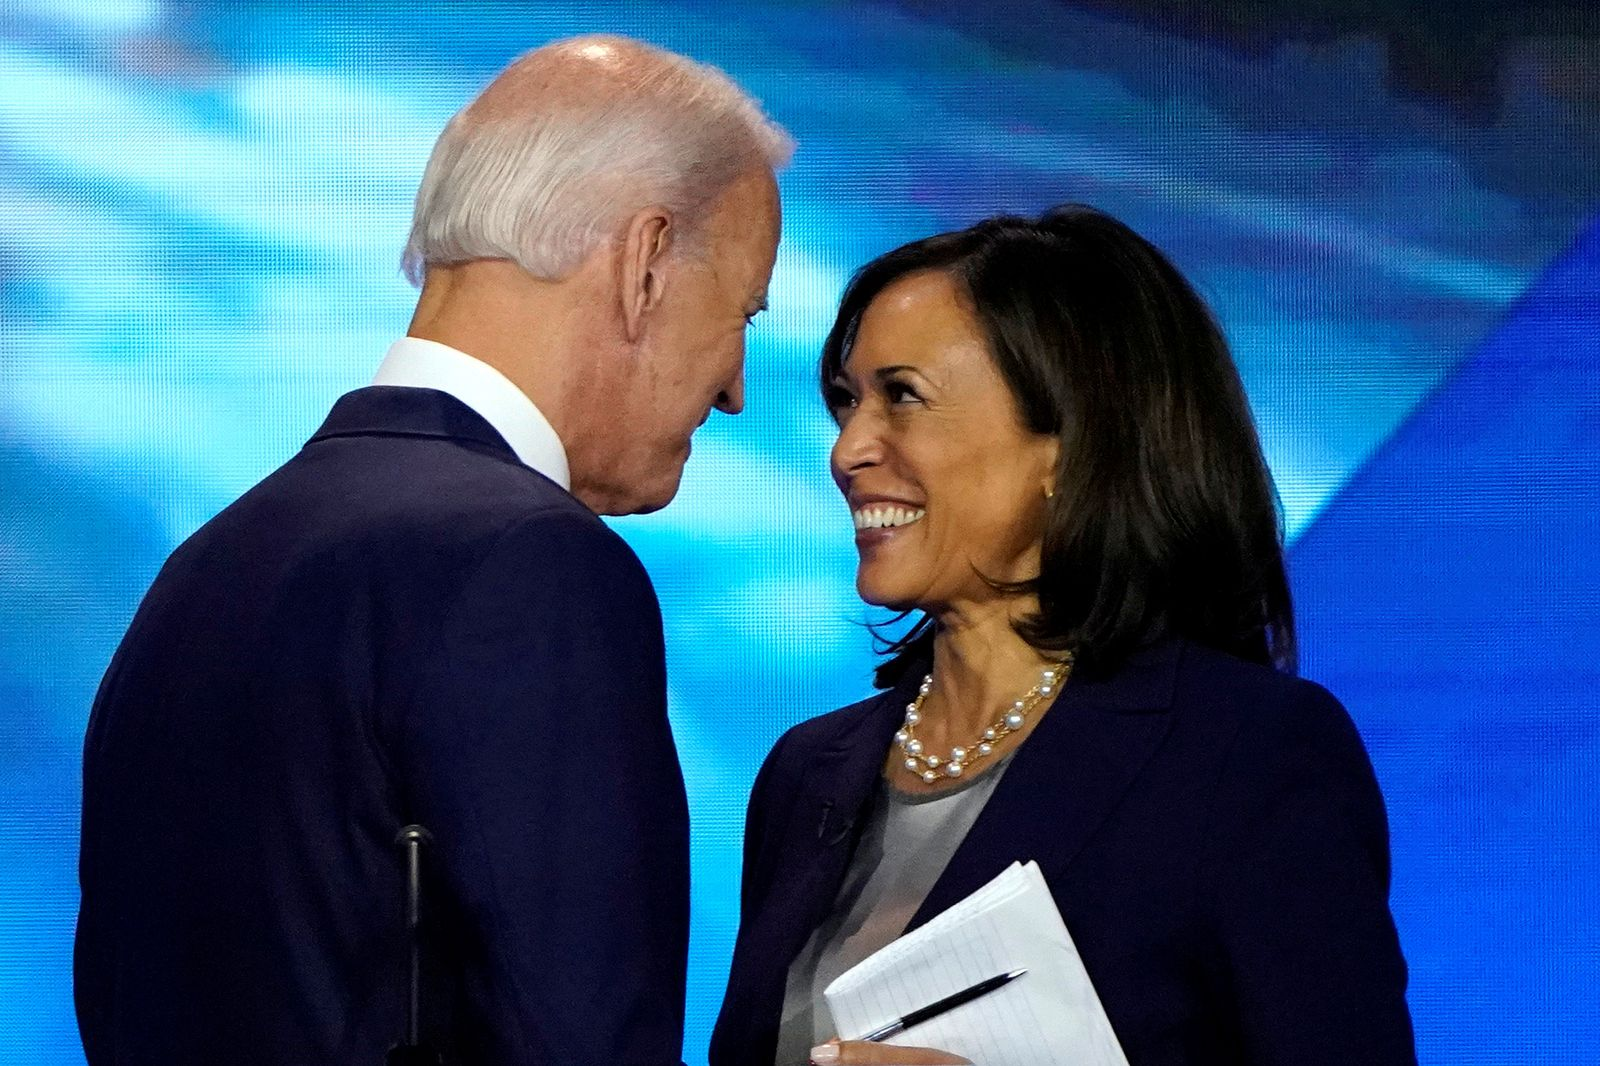 FILE PHOTO: Former Vice President Biden talks with Senator Harris after the conclusion of the 2020 Democratic U.S. presidential debate in Houston